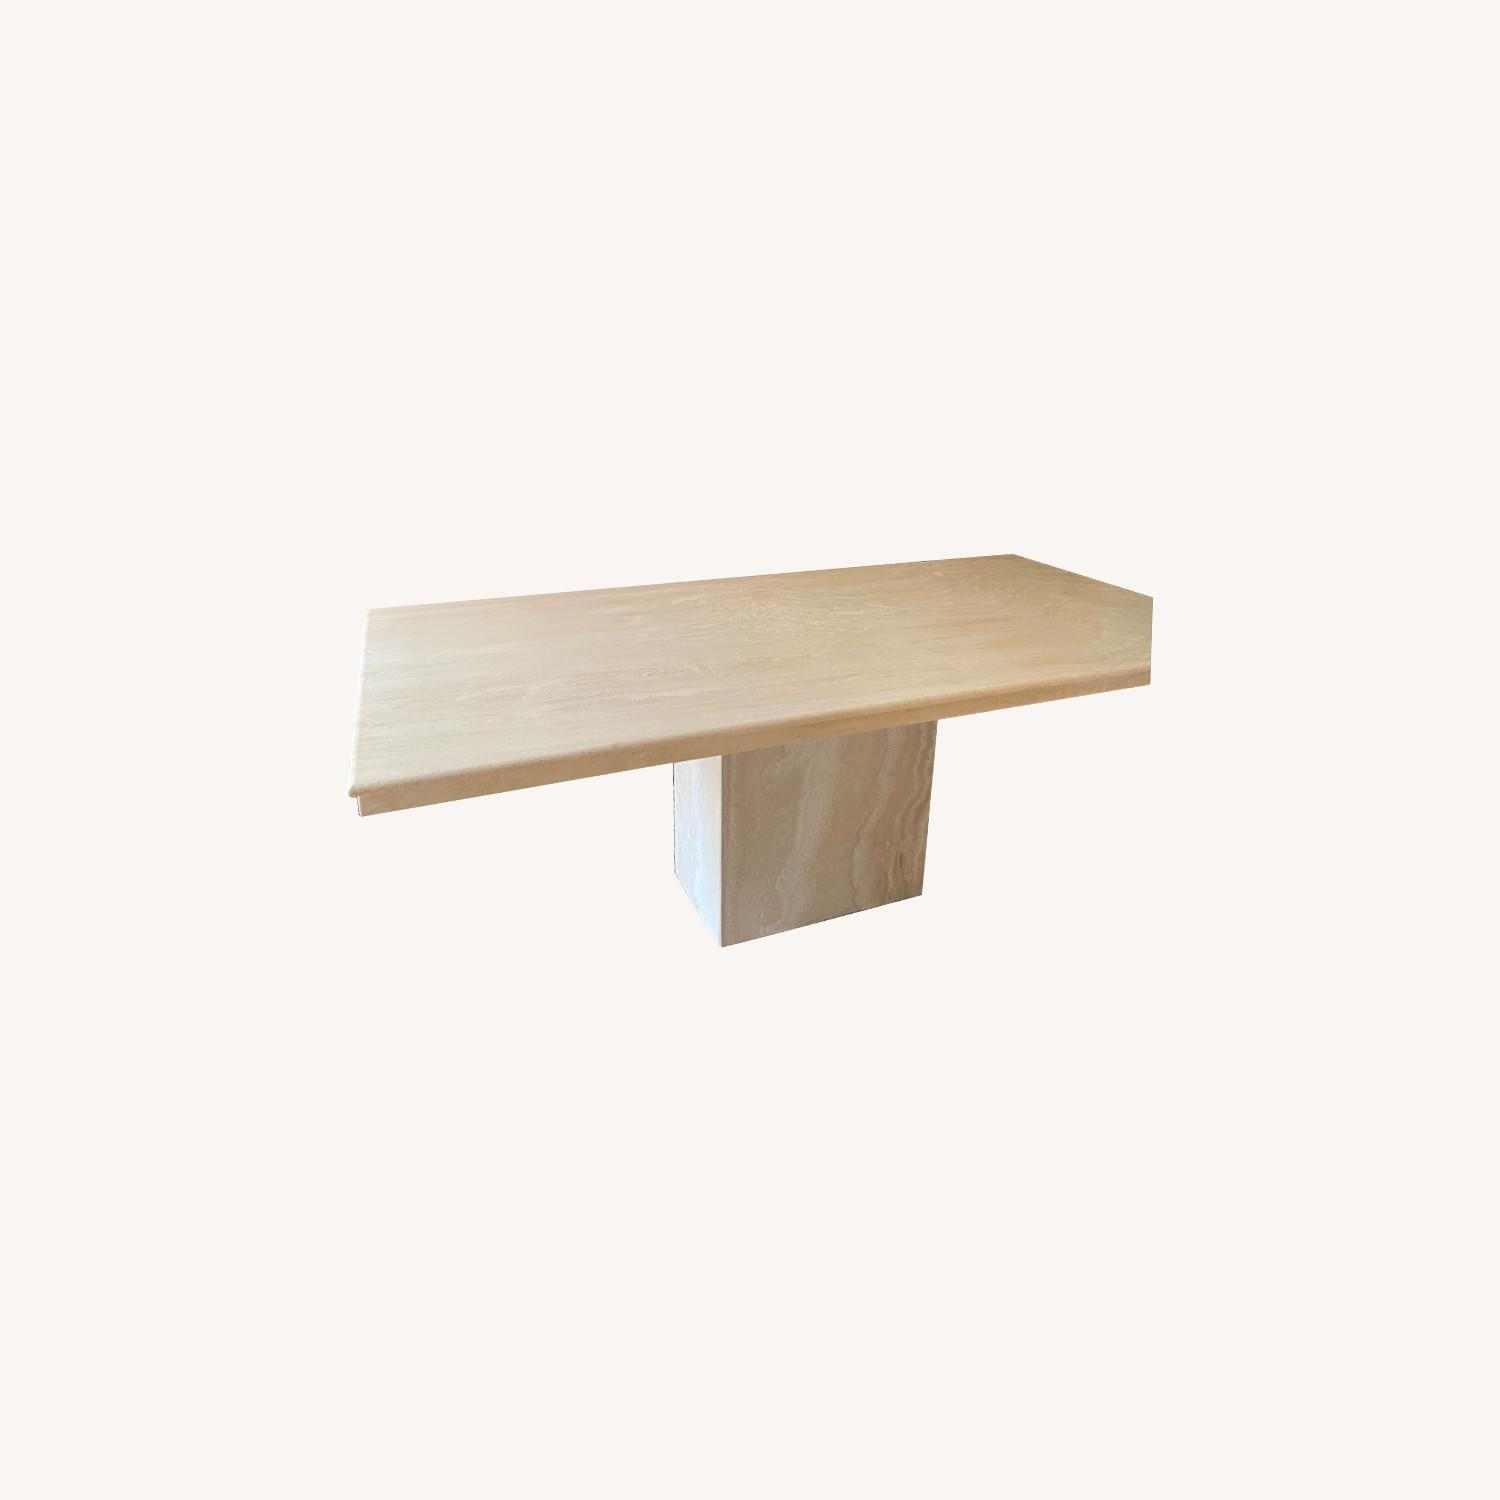 Marble Travetine Dining Table - image-0